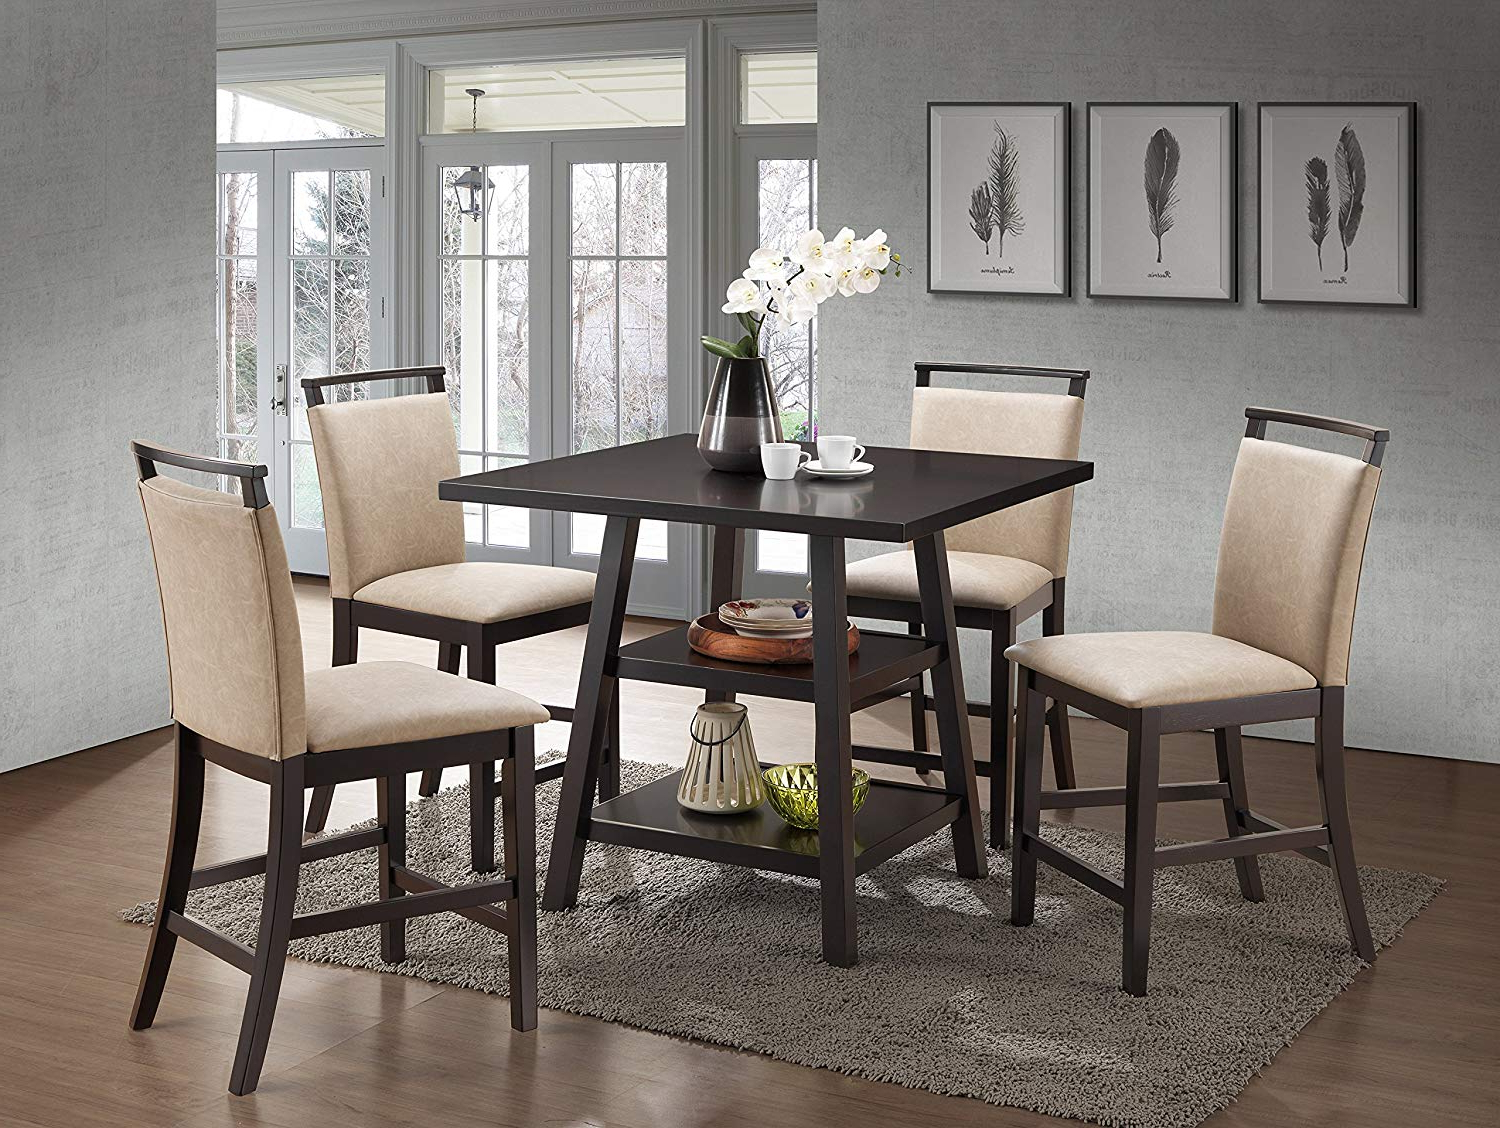 Kings Brand Aloe 5 Piece Cappuccino Wood Counter Height Dining Set, Table  With 4 Clay Upholstered Chairs Regarding Favorite Cappuccino Finish Wood Classic Casual Dining Tables (View 15 of 25)